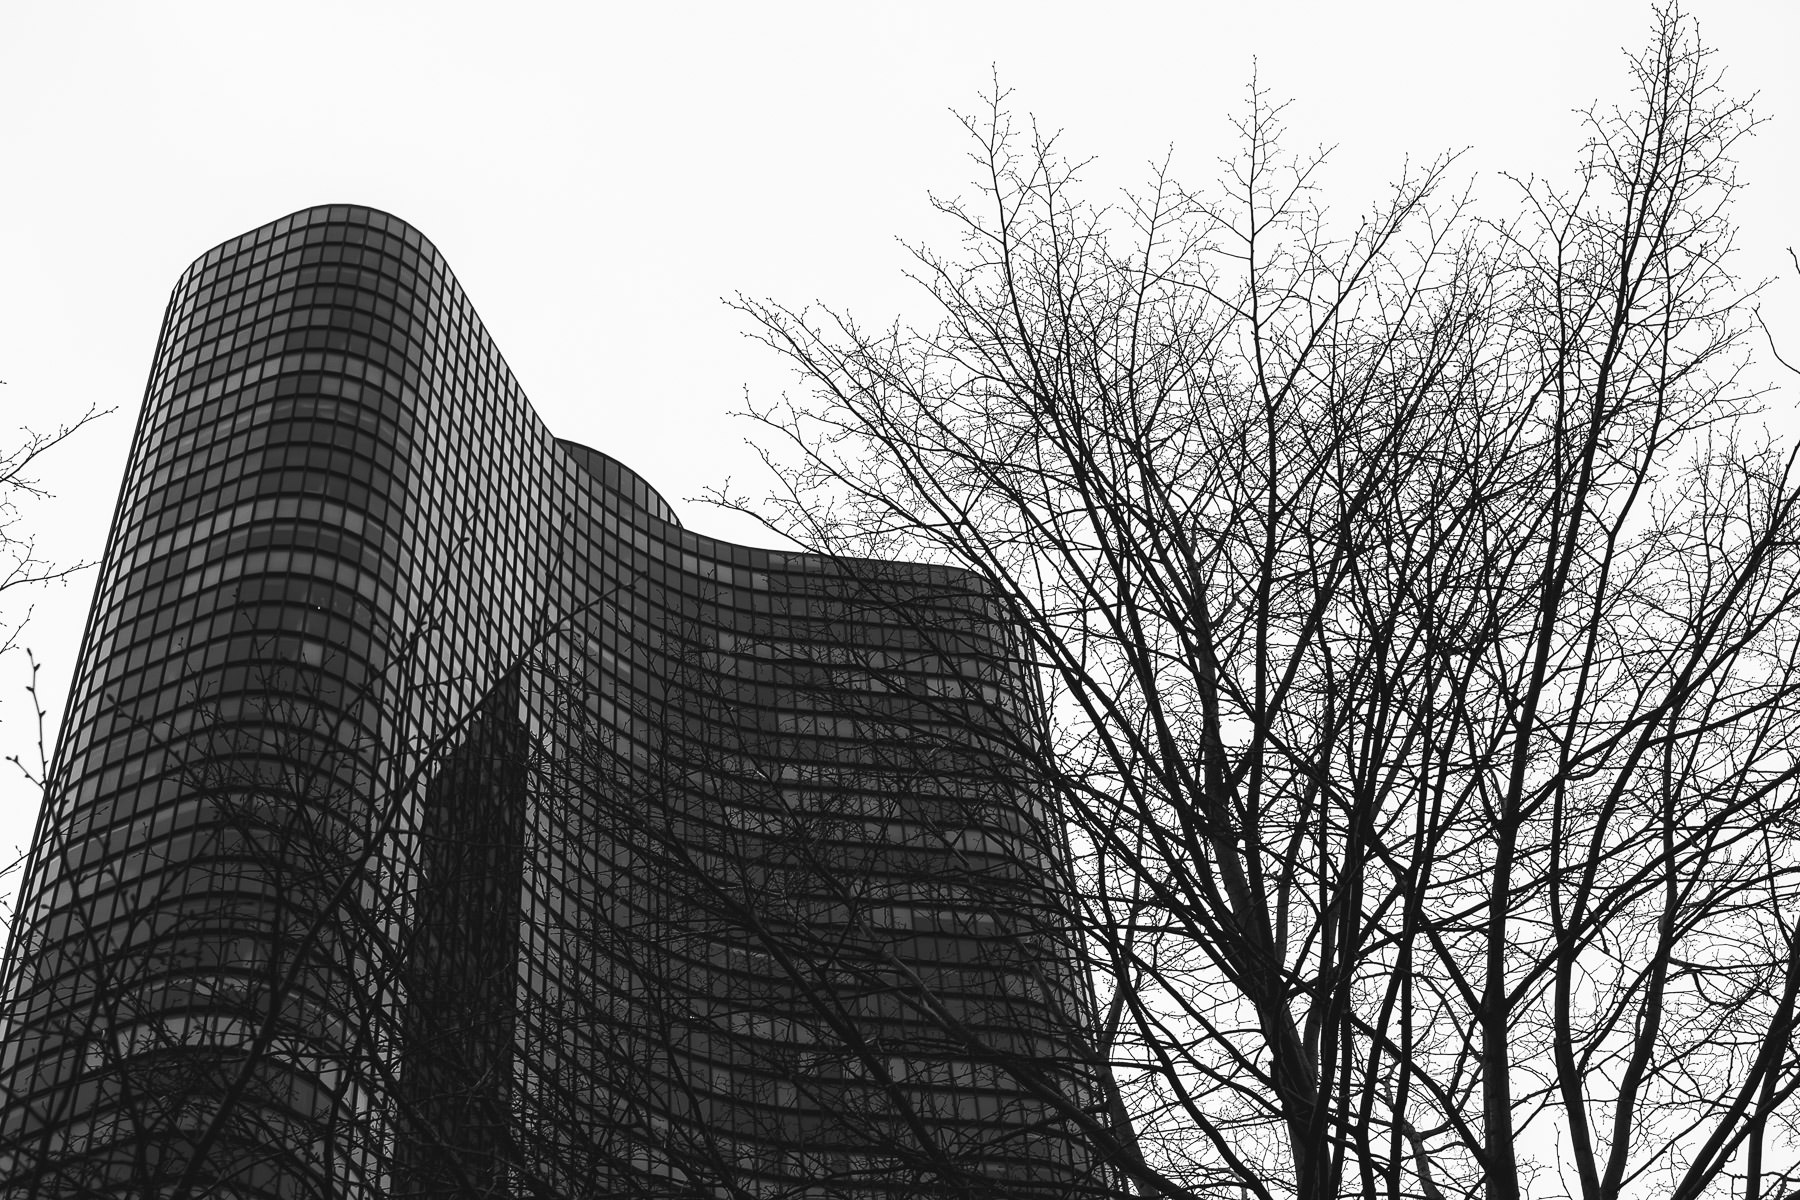 Lake Point Tower rises over barren wintry trees into the Chicago sky.